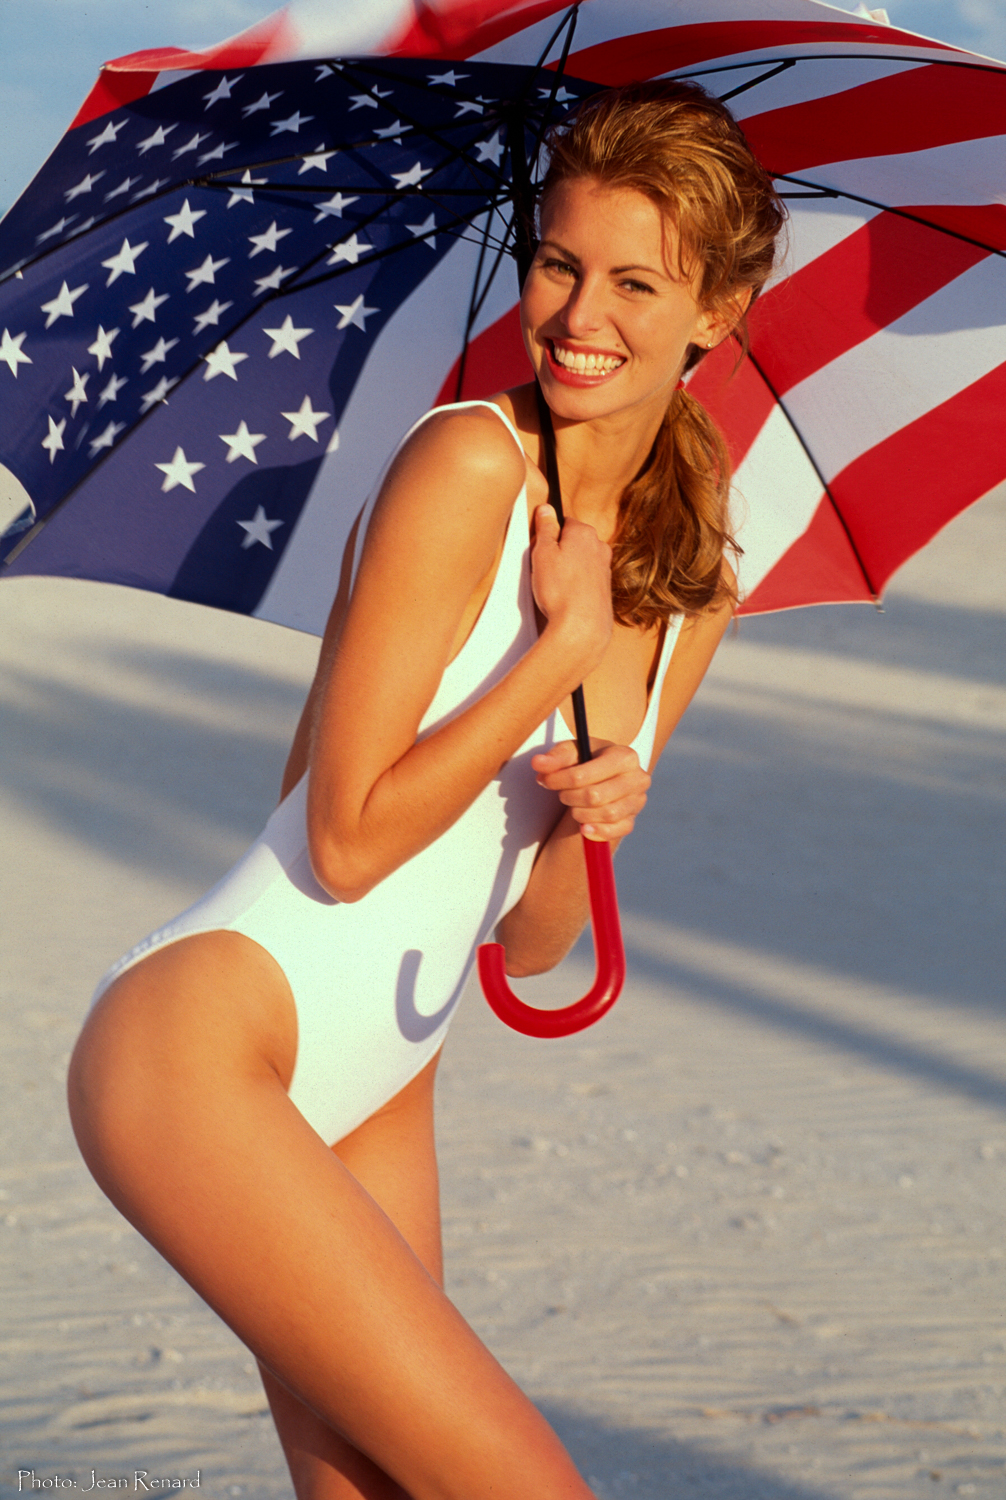 Ocean Drive/ Niki Taylor.  The wind was so strong the umbrella collapsed and flew away several times